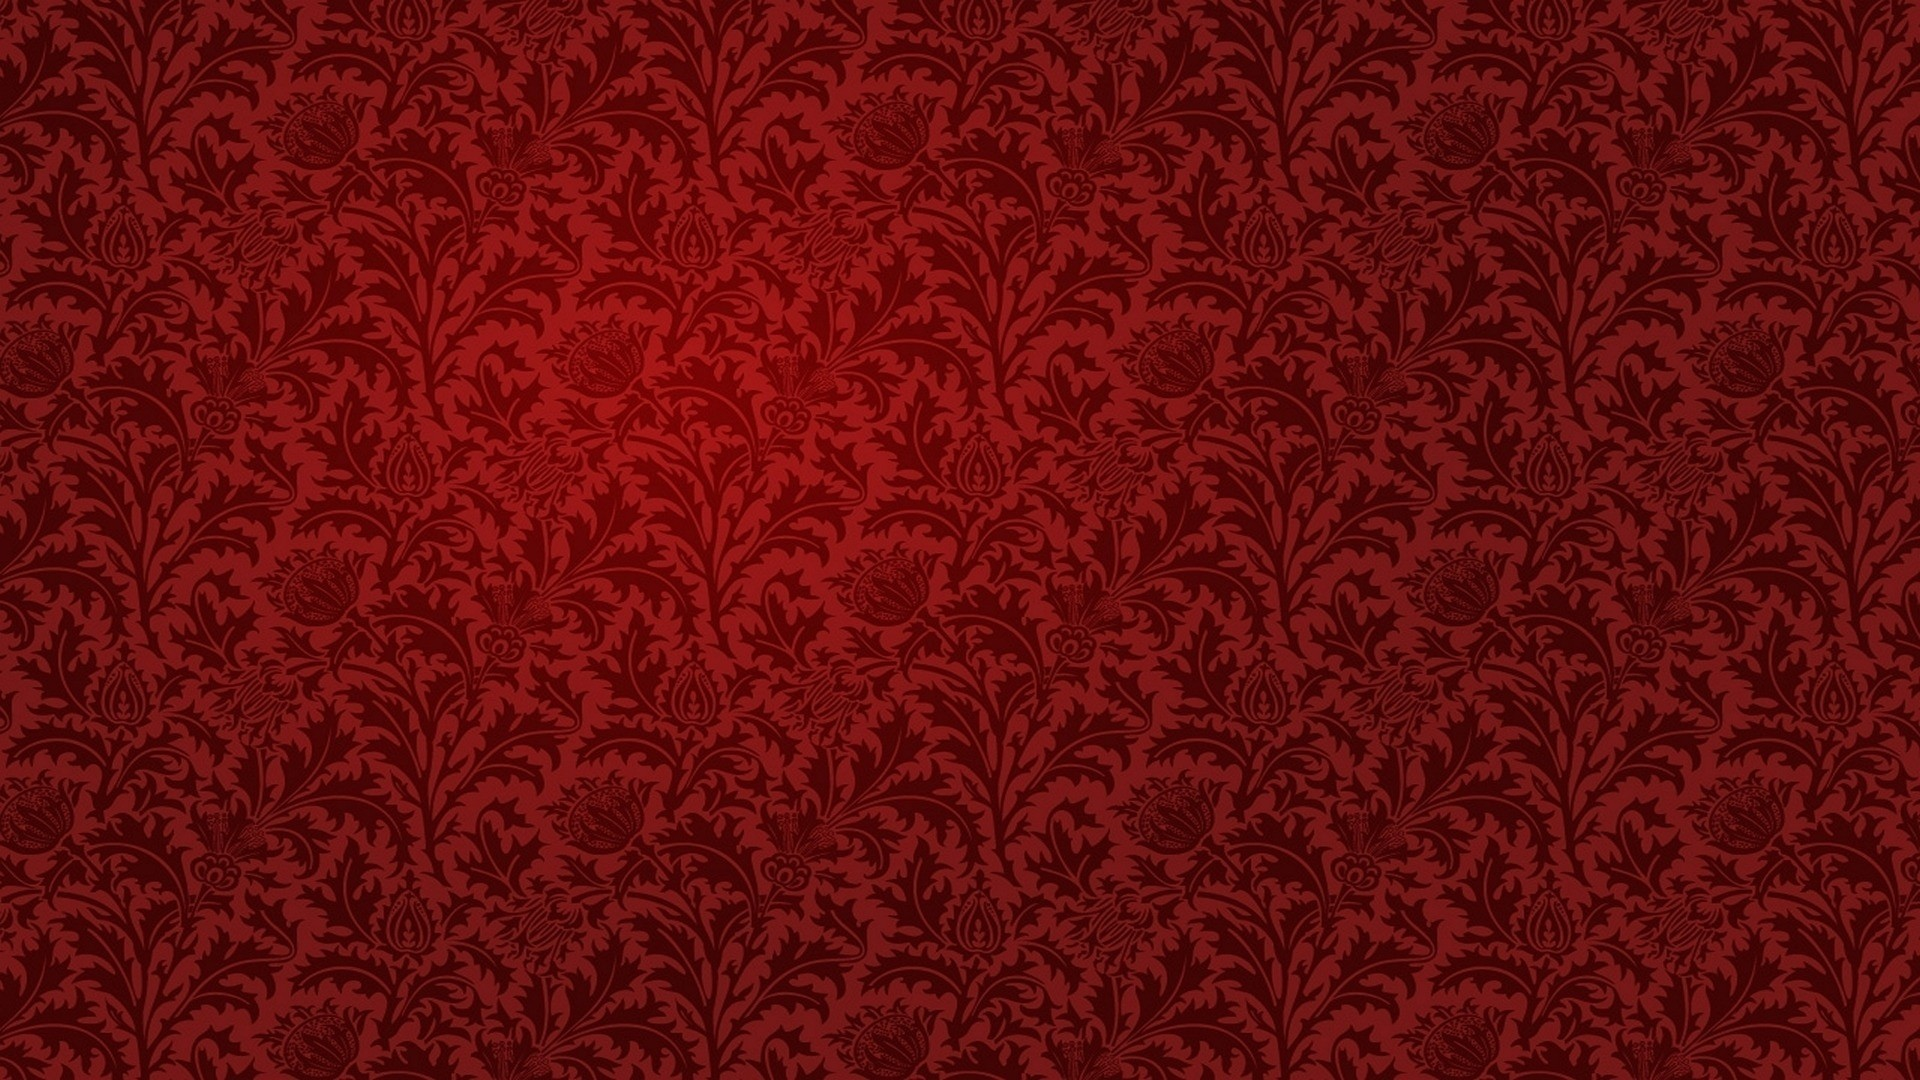 Res: 1920x1080, File: red-textured-wallpaper-155.jpg by Arvilla Noles